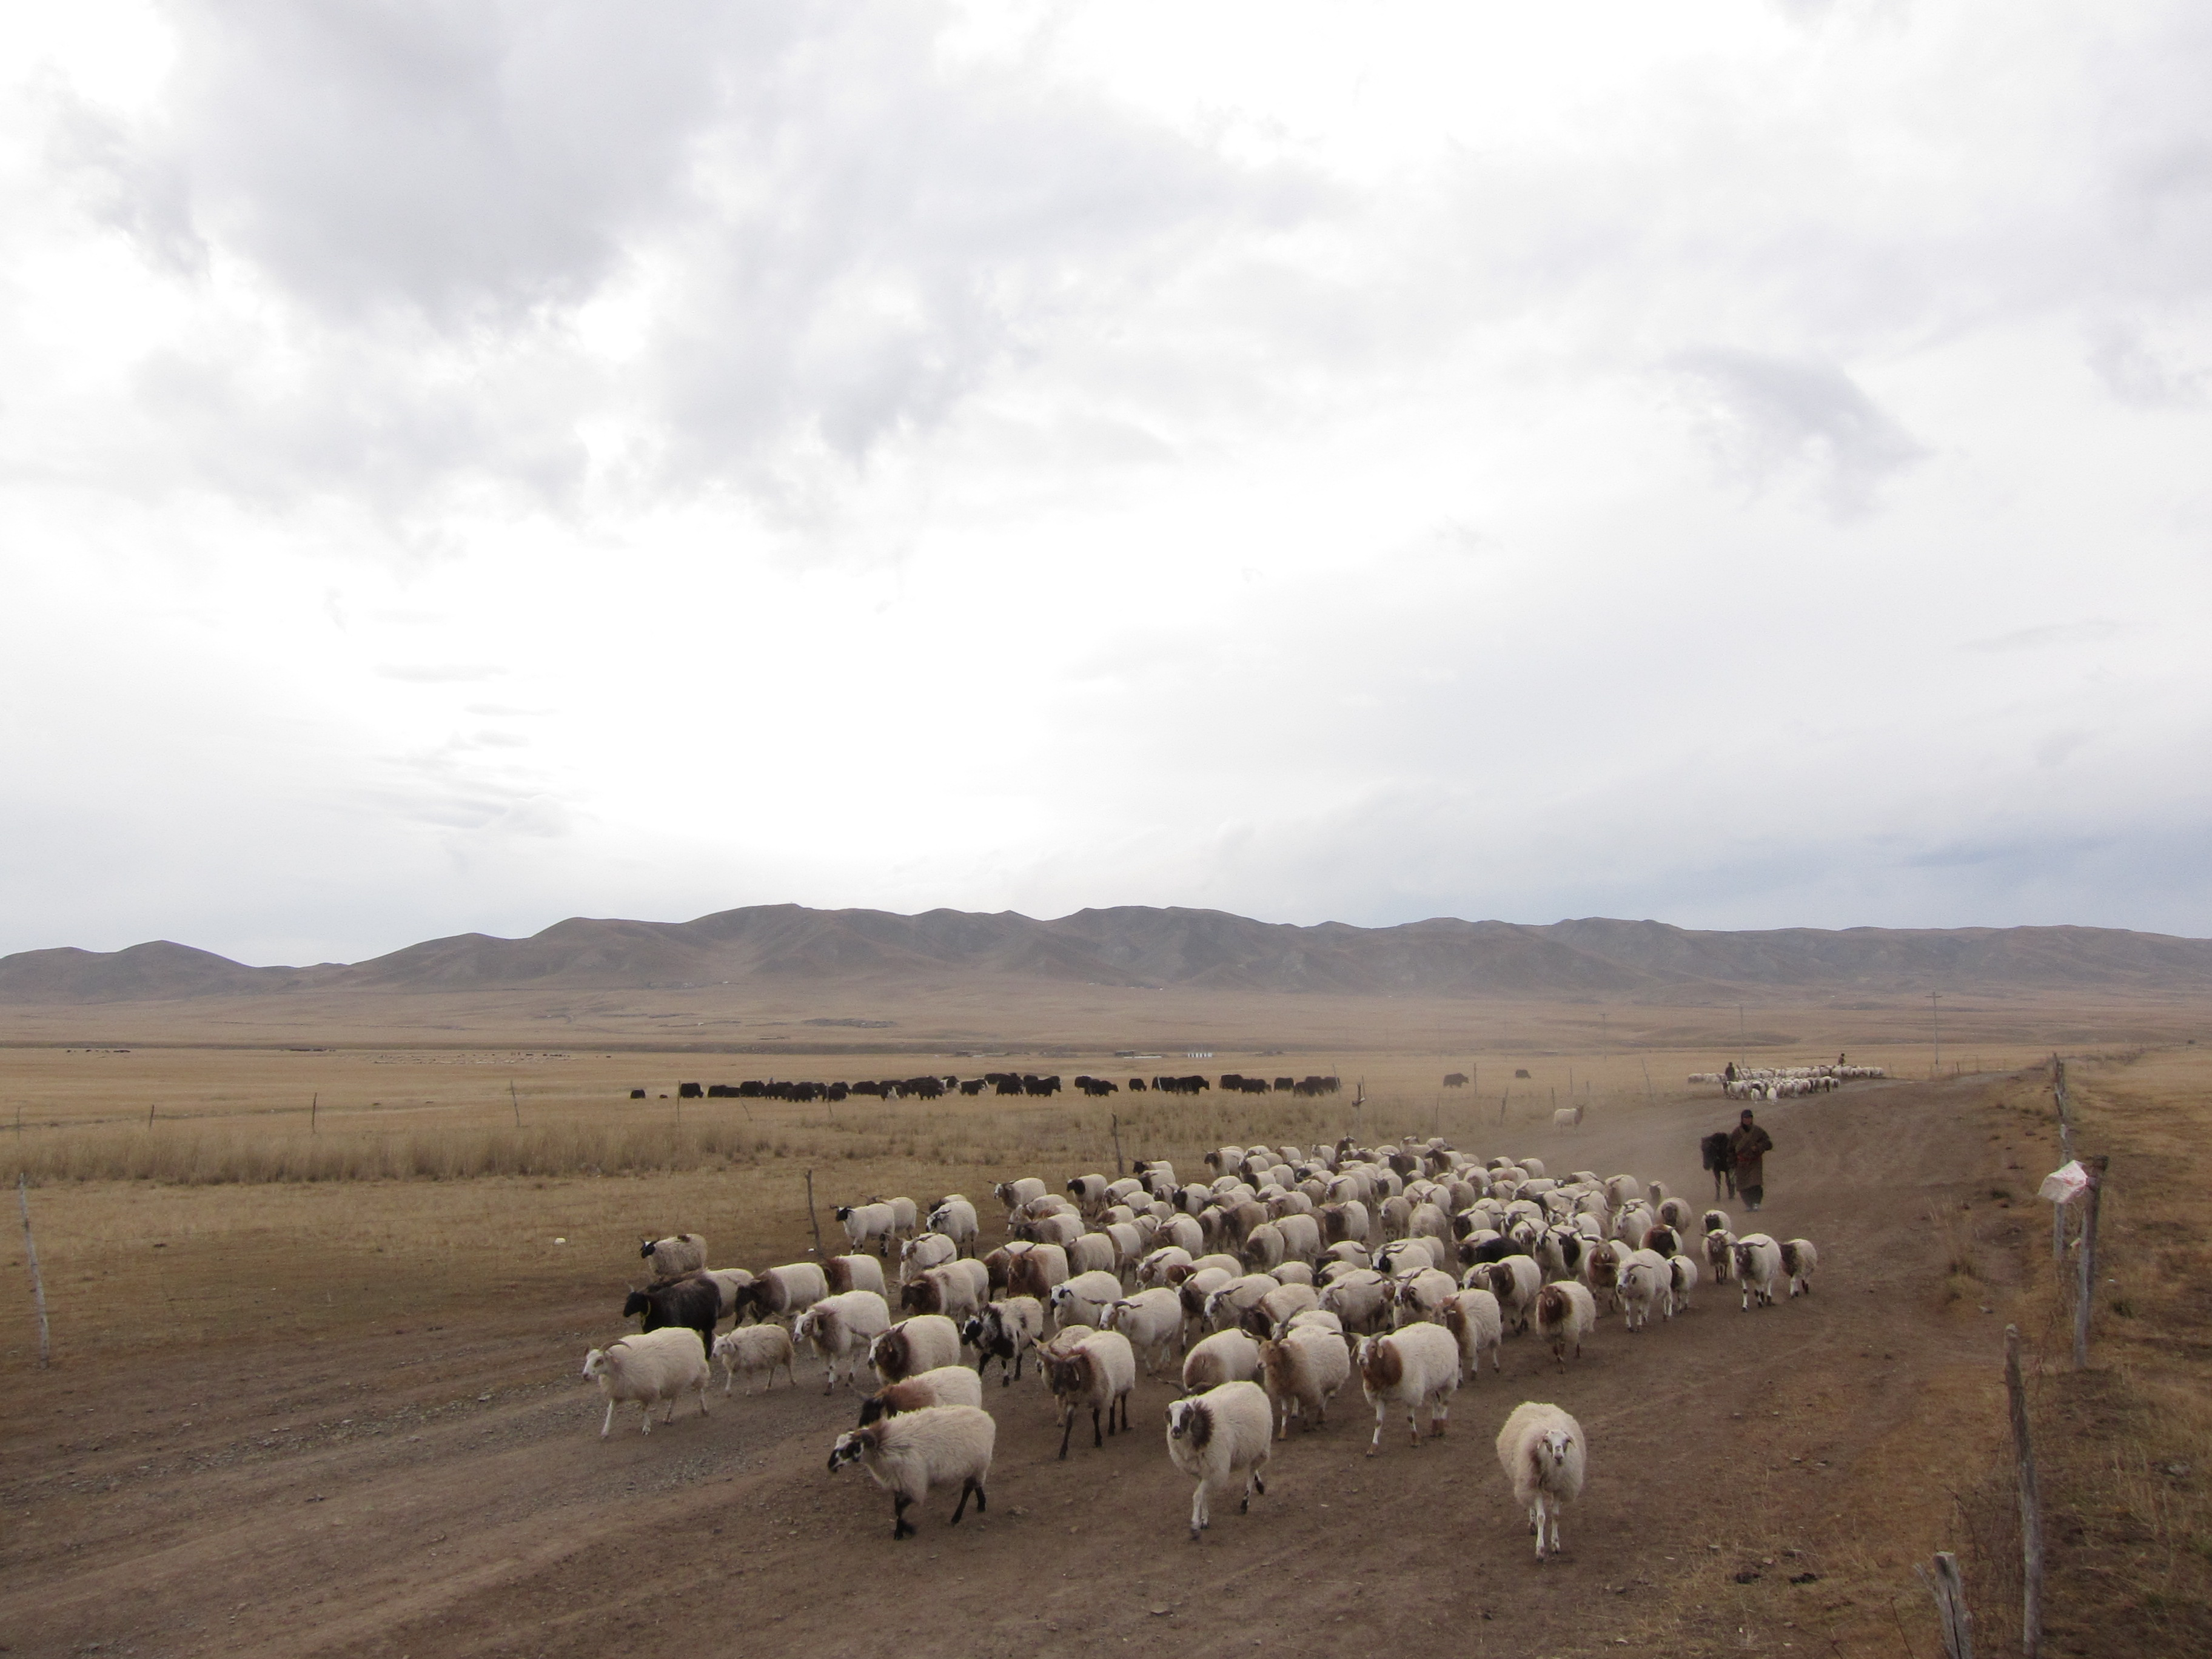 Tibetan Nomads, Farmers and Semi-Nomads on Qinghai-Tibet Plateau